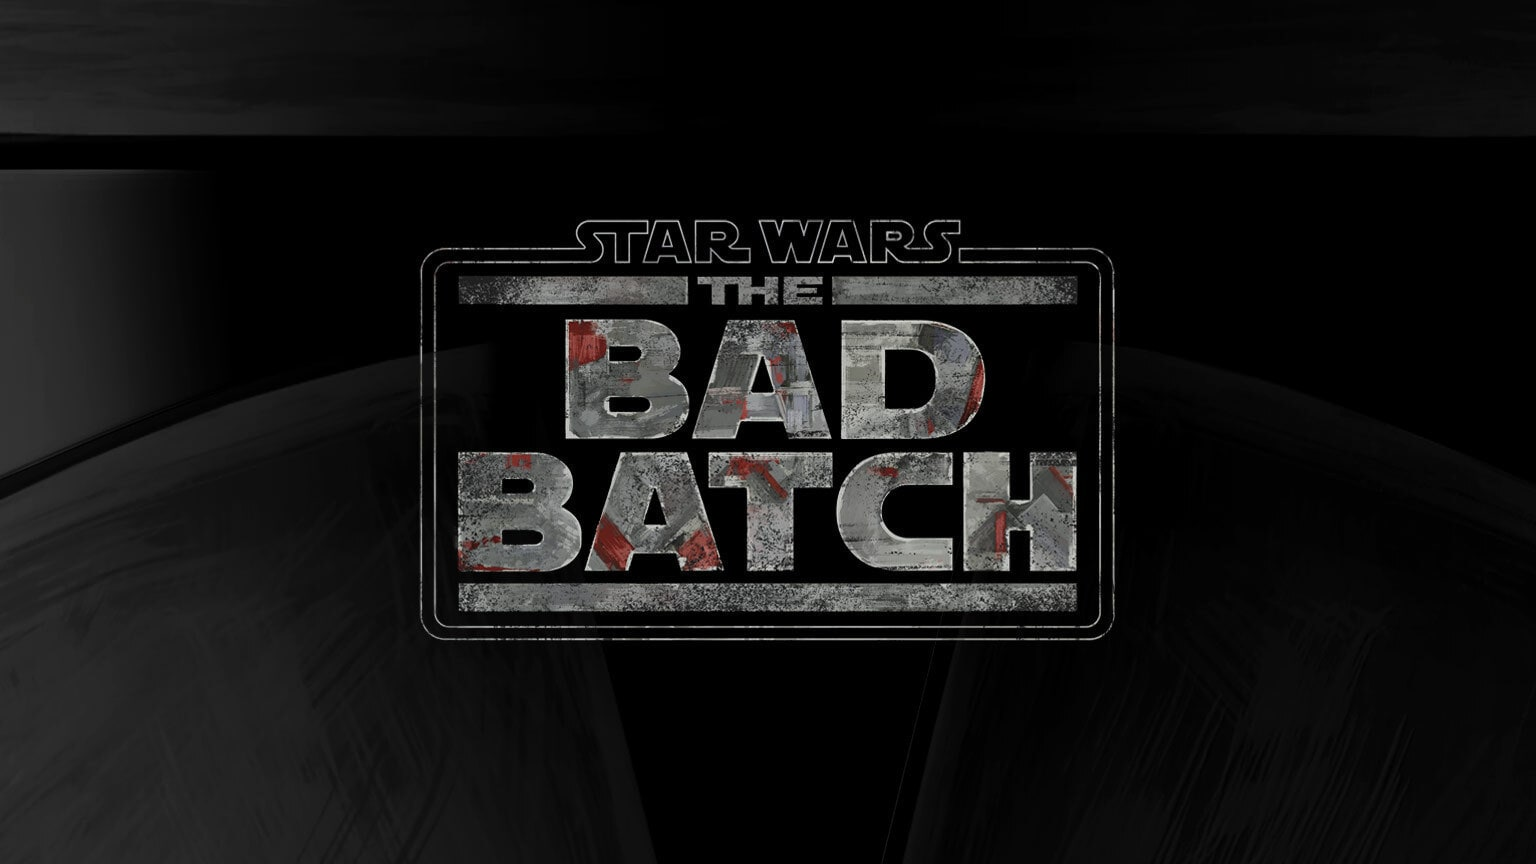 Star Wars: The Bad Batch, An All-New Animated Series, to Debut on Disney+ in 2021